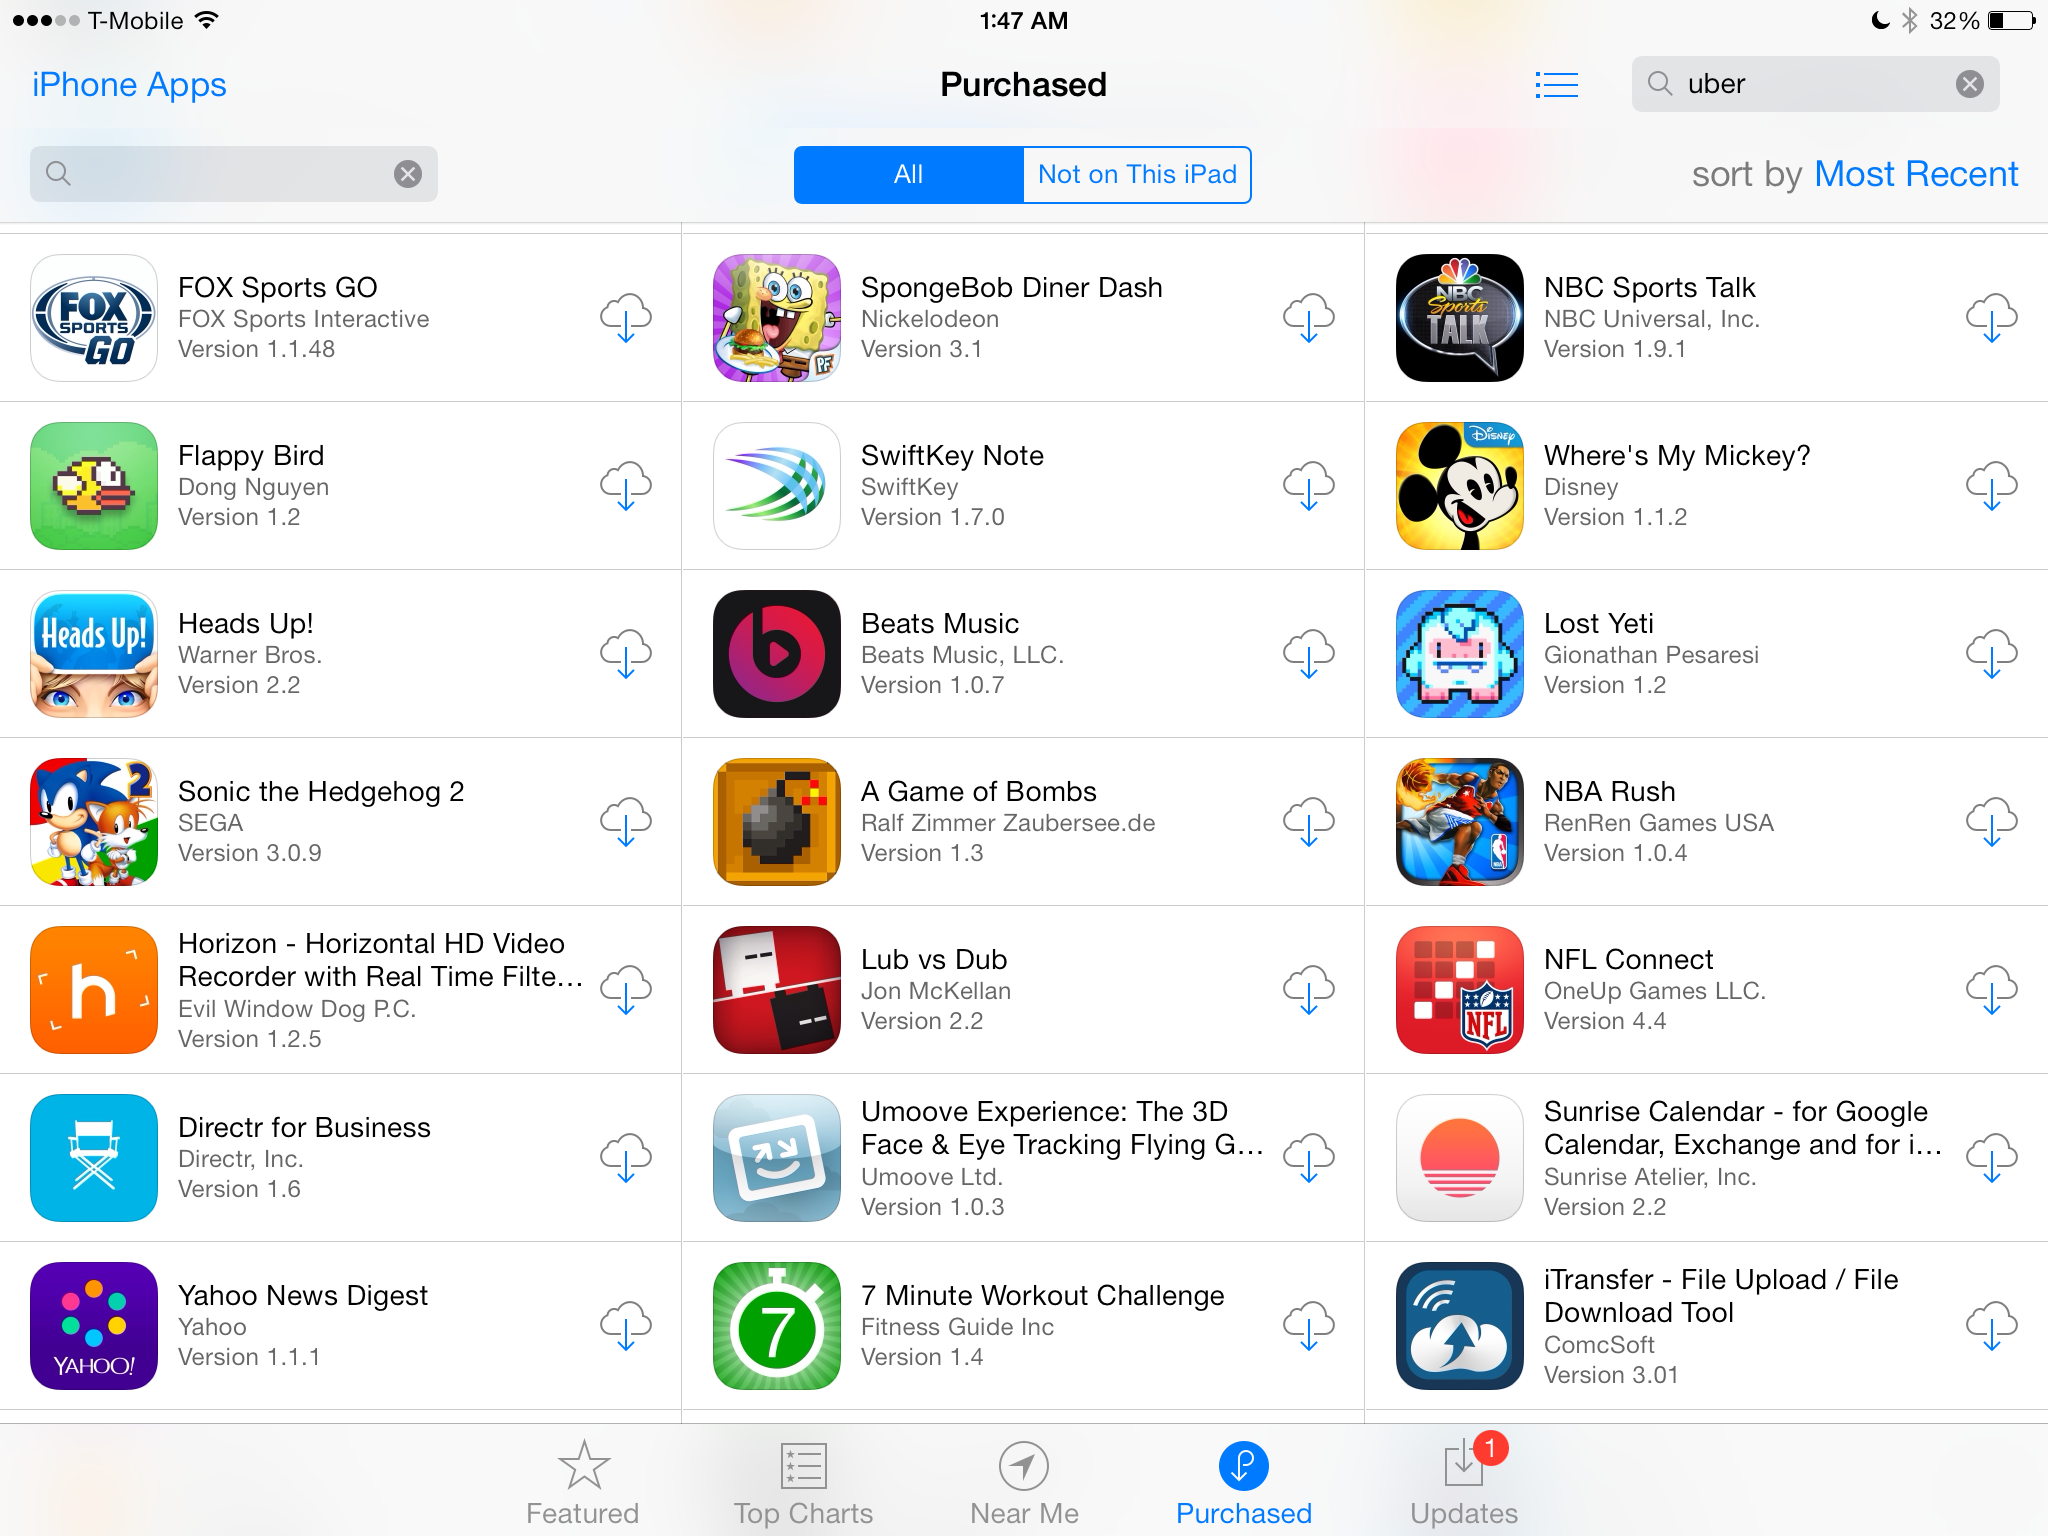 iOS 7: the ultimate App Store guide